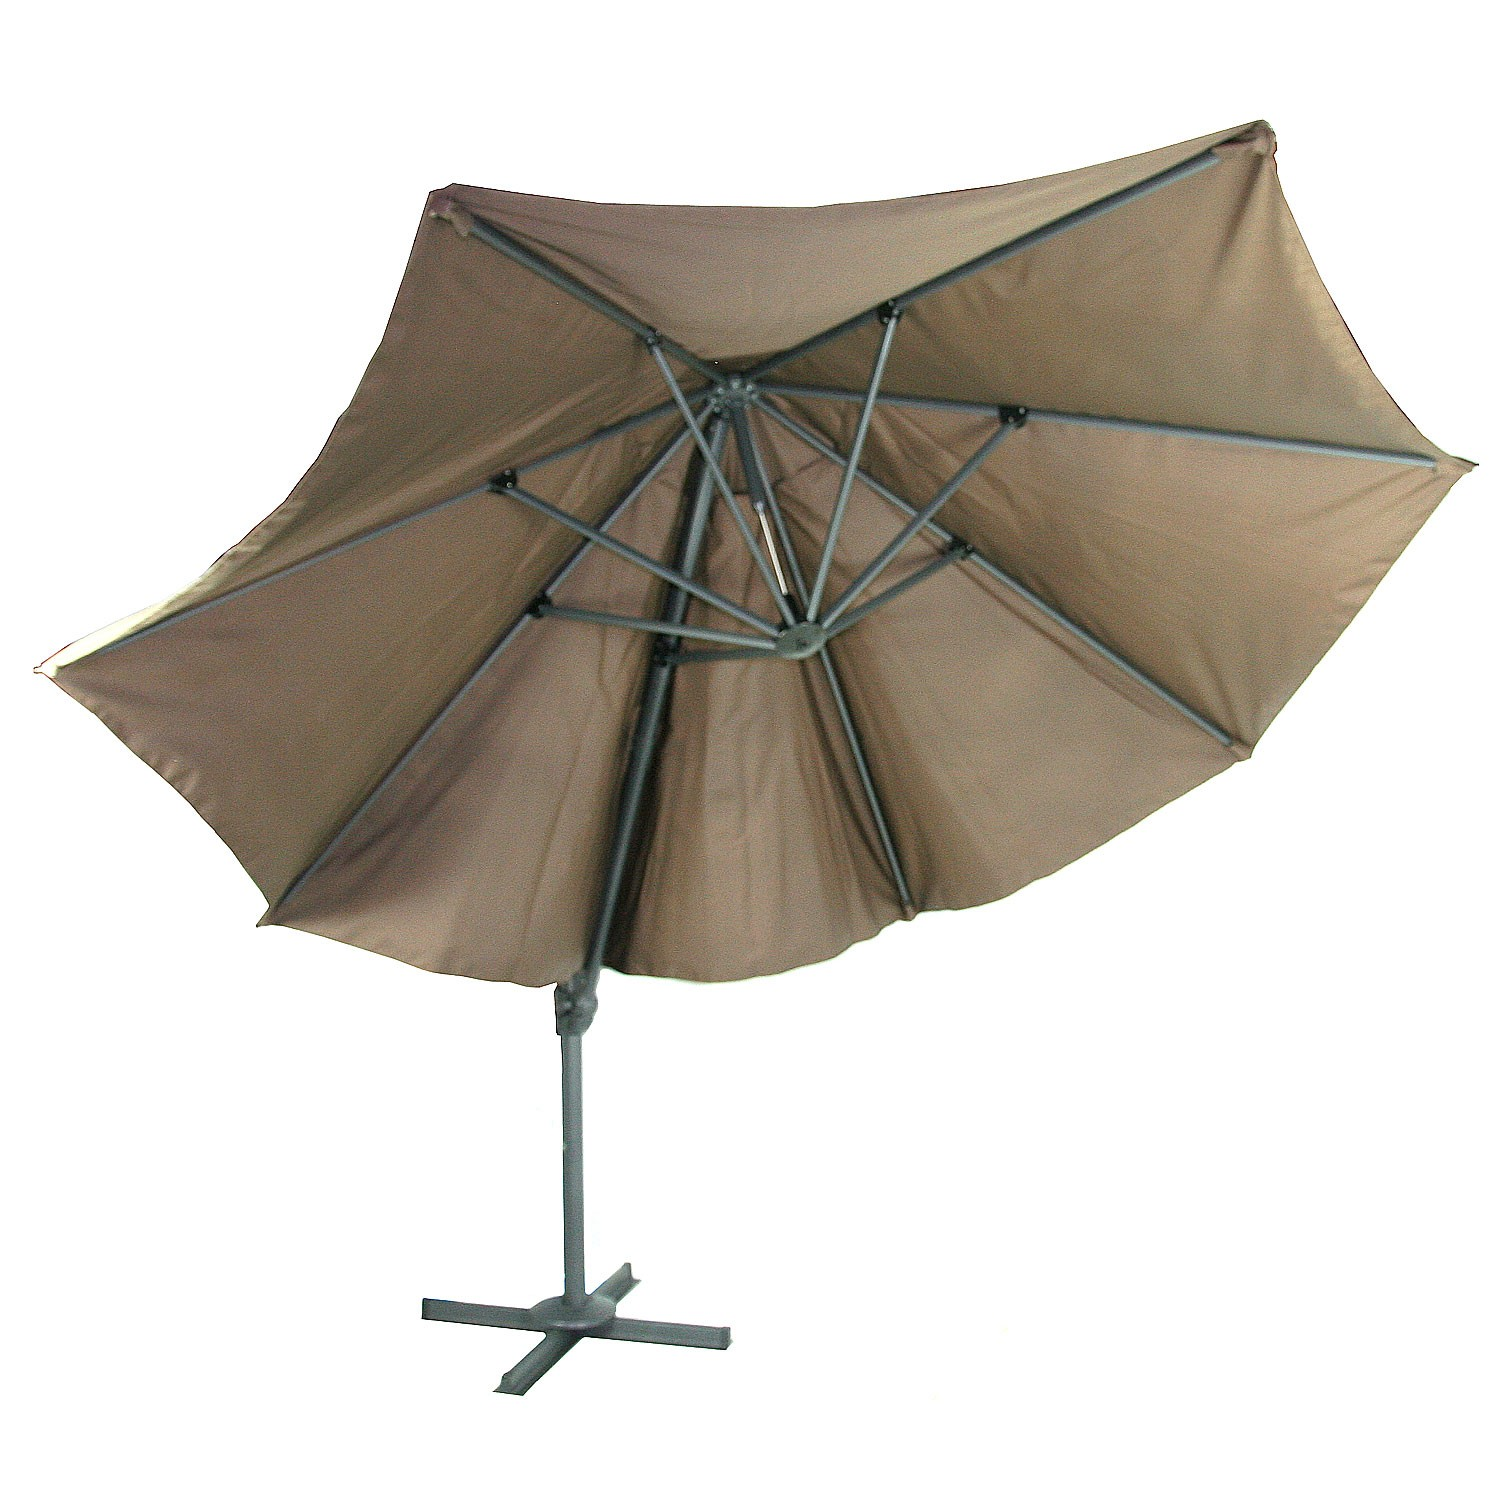 Parasol Taupe Details About River Cottage Gardens Outdoor 11 Foot Polyester Parasol Resort Umbrella Taupe